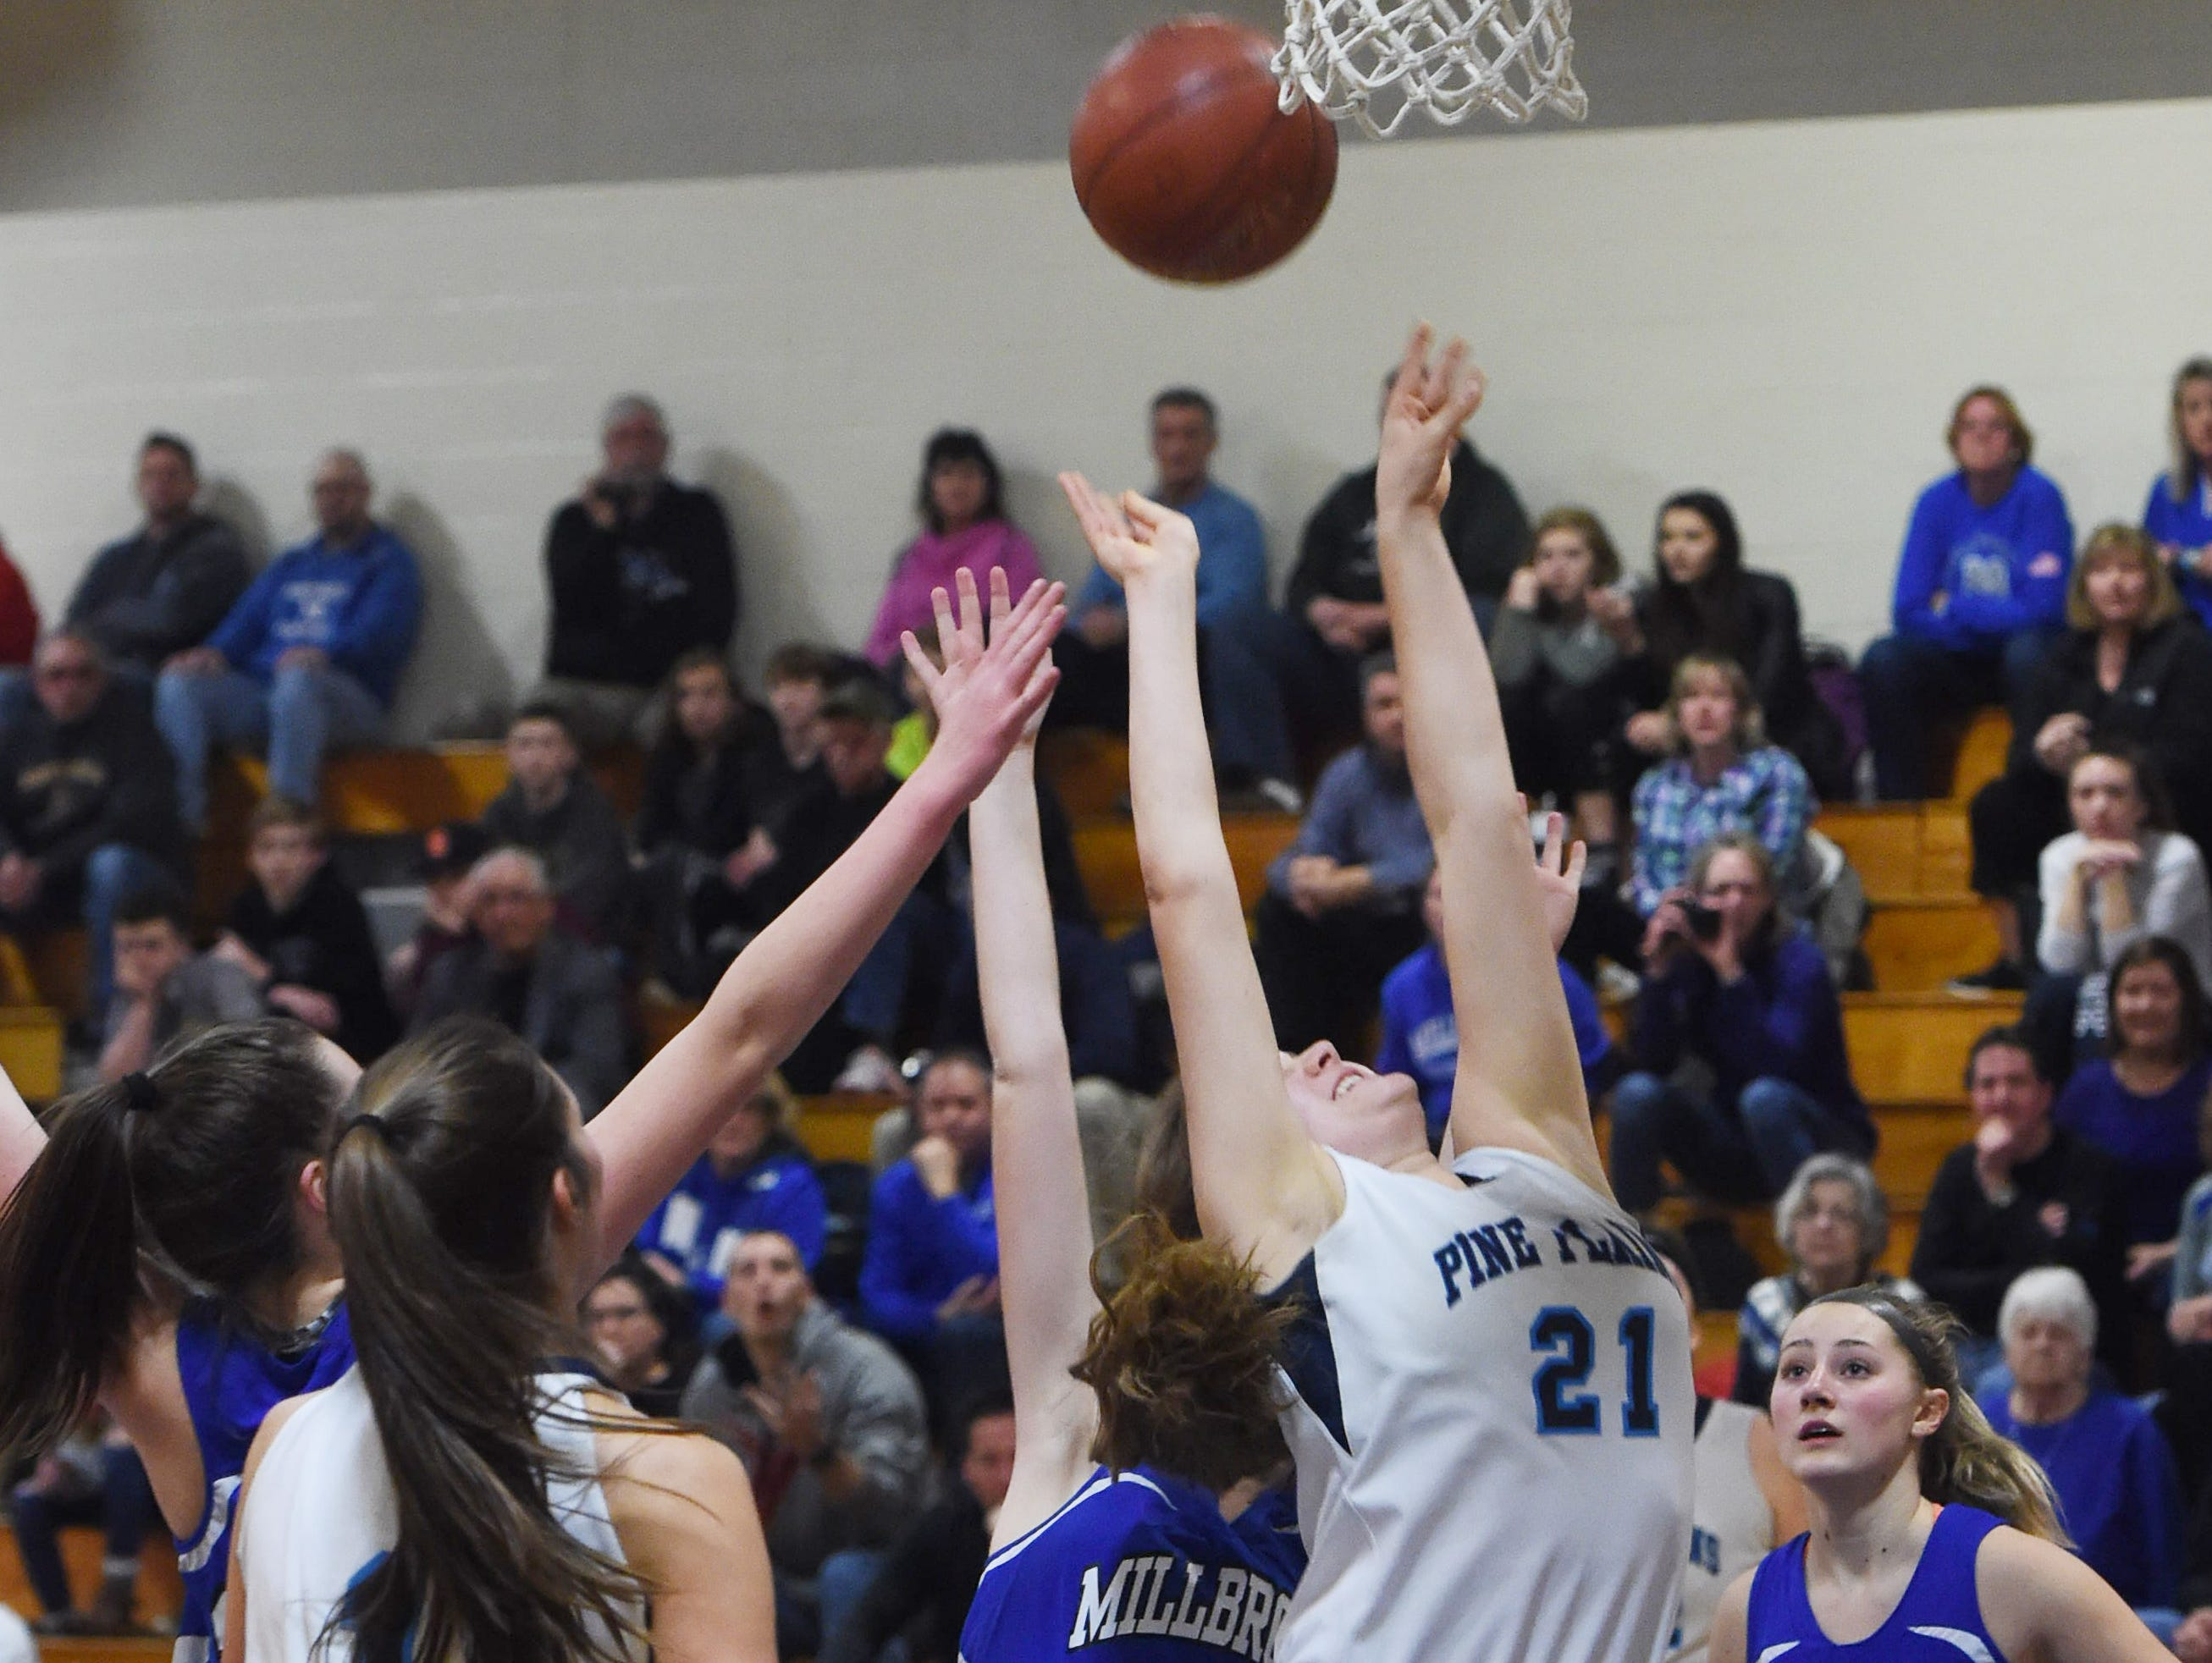 Pine Plains' Isabella Starzyk, center, goes for a layup during Friday's Section 9 championship game against Millbrook at Mount Saint Mary College in Newburgh.